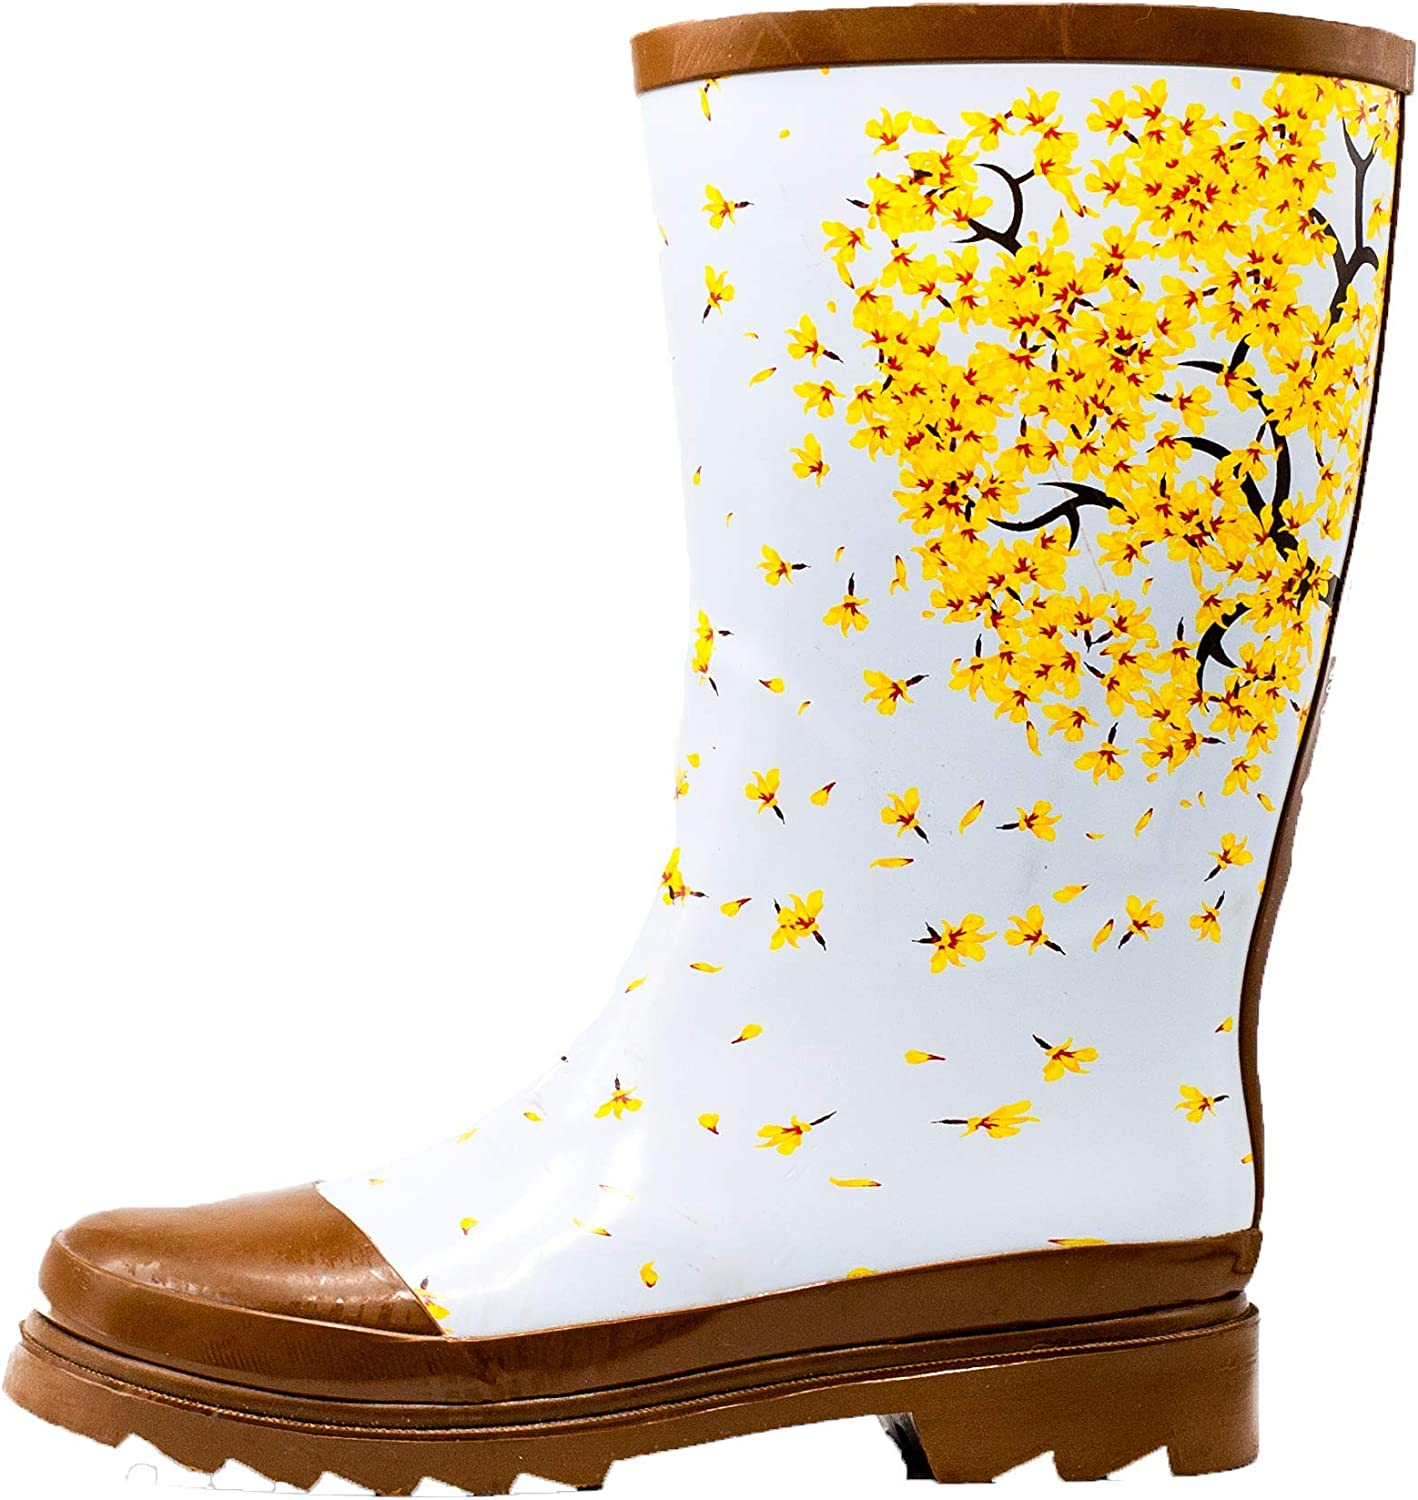 I AM San Francisco Mall UNDERCOVER Boots for Waterproof Comfortable Women Ranking integrated 1st place Fashion S